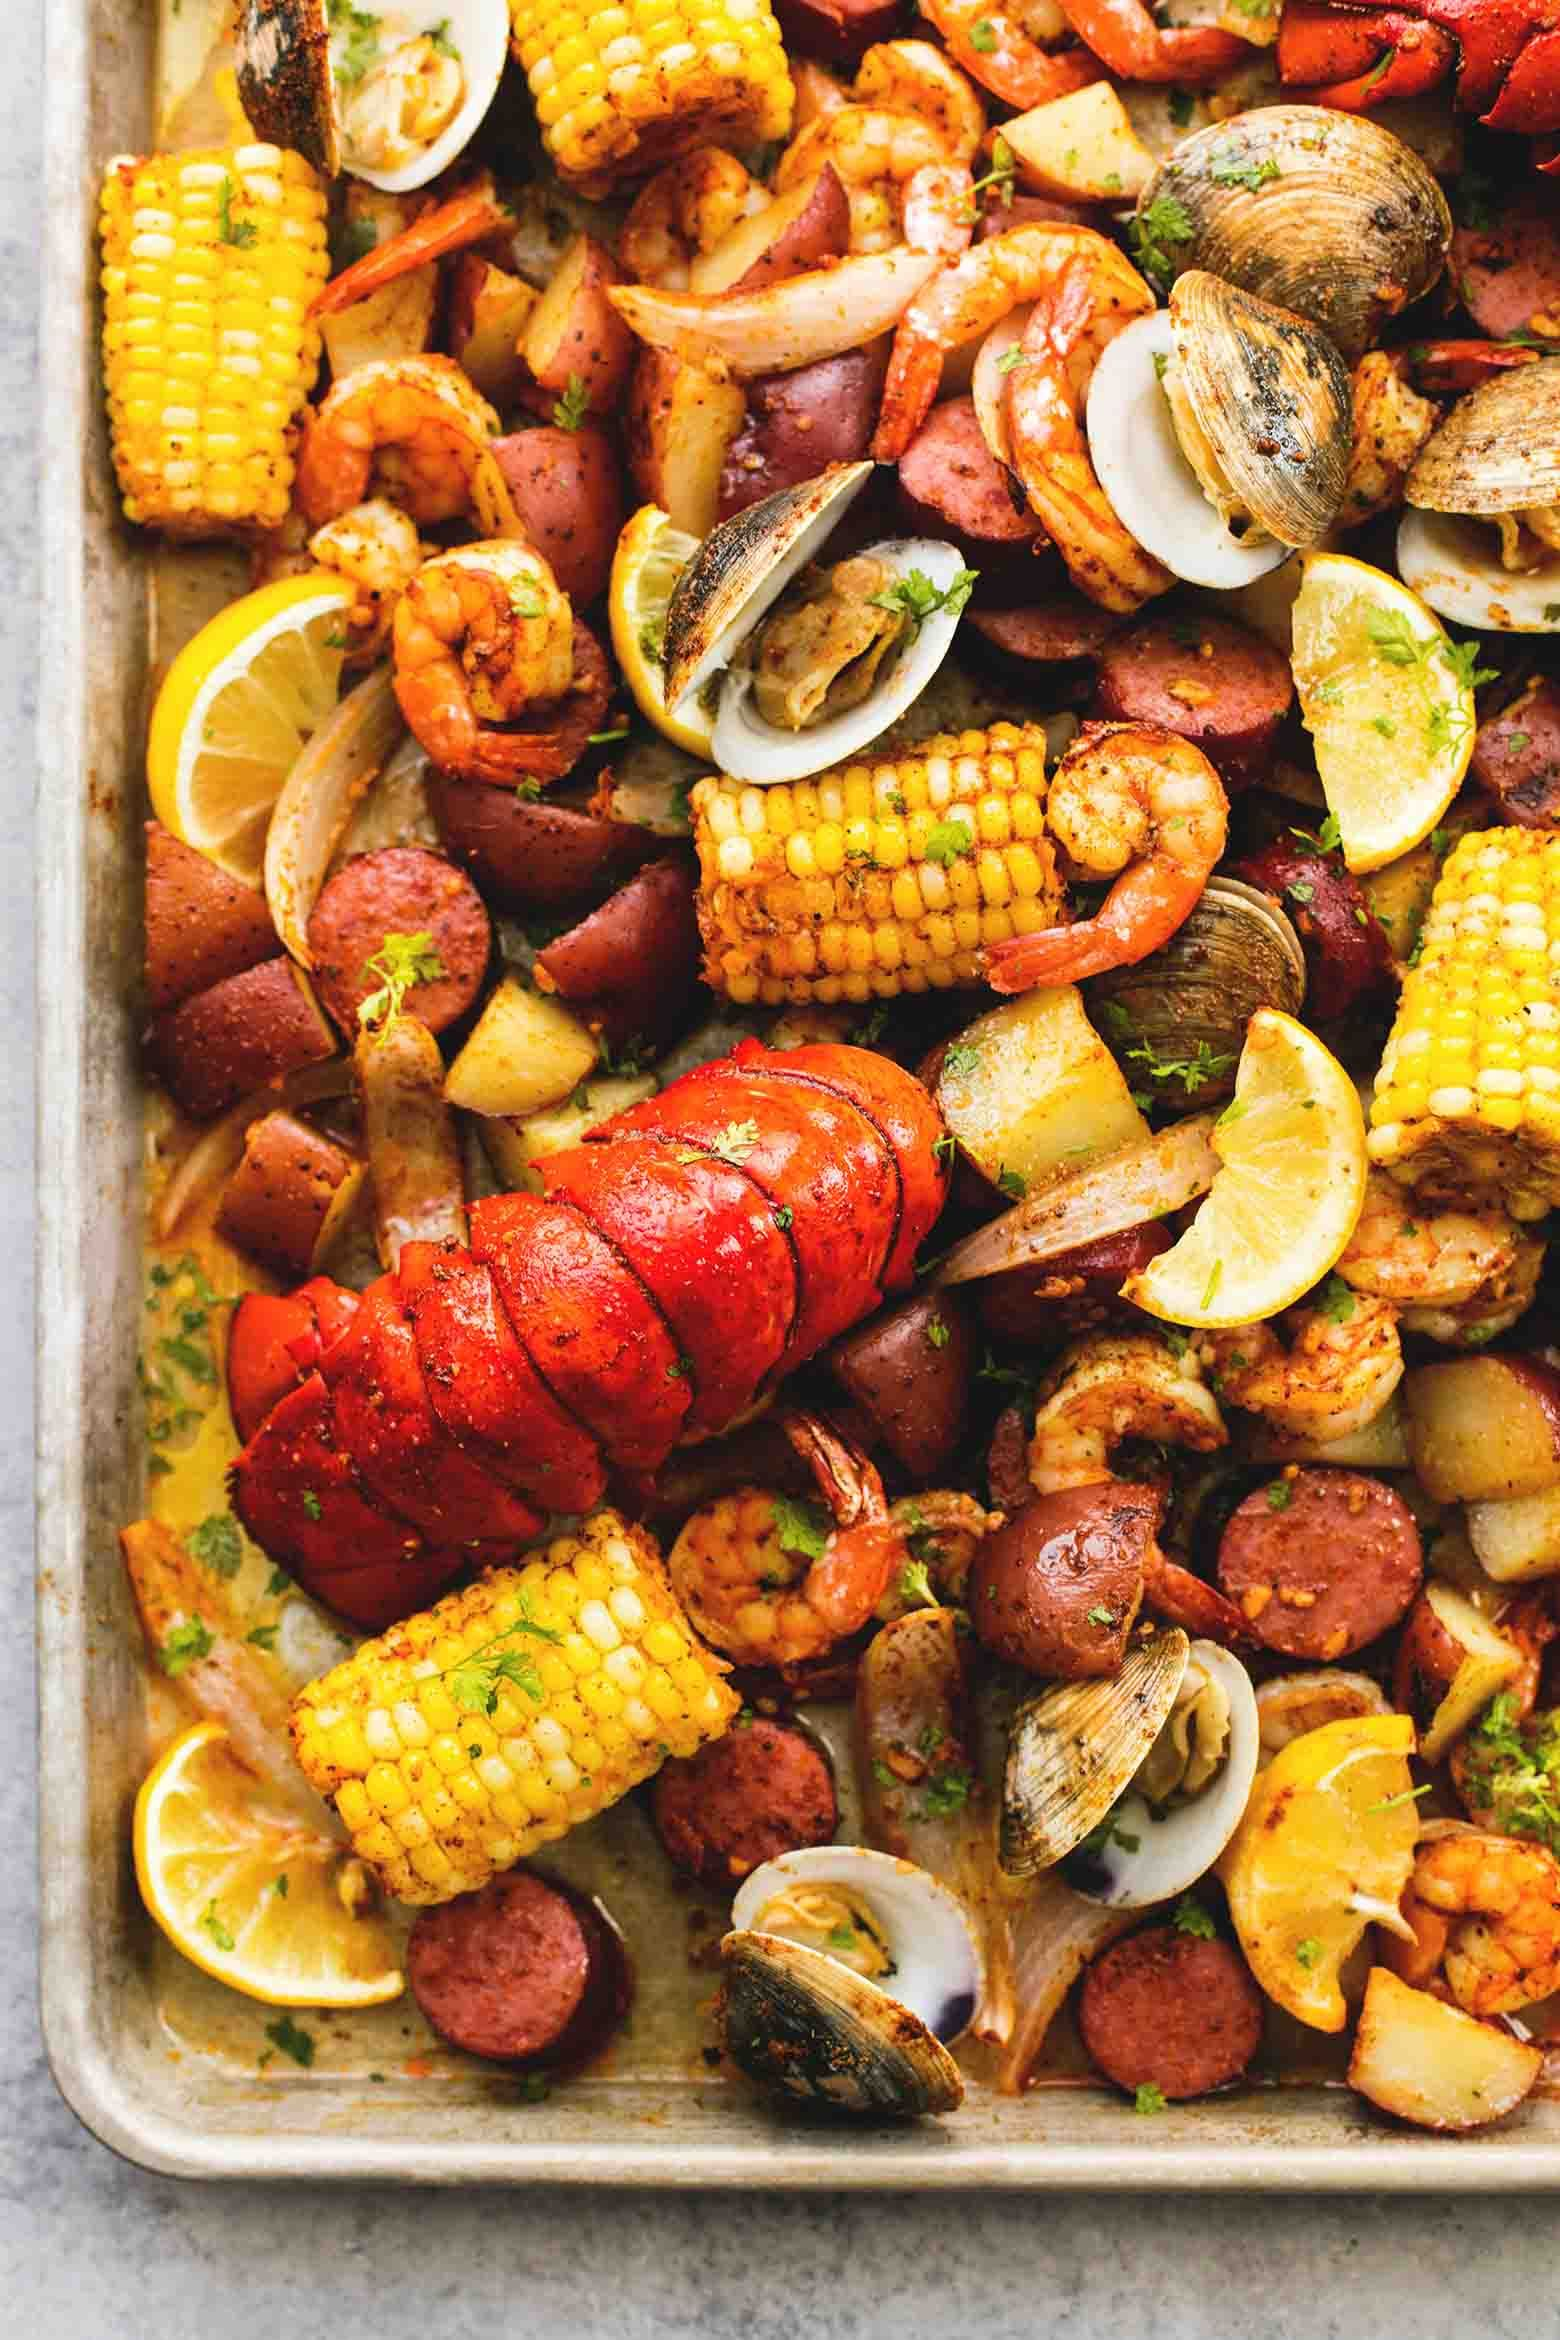 Christmas Eve Food In Spain: The Best Seafood Recipes For Christmas Eve